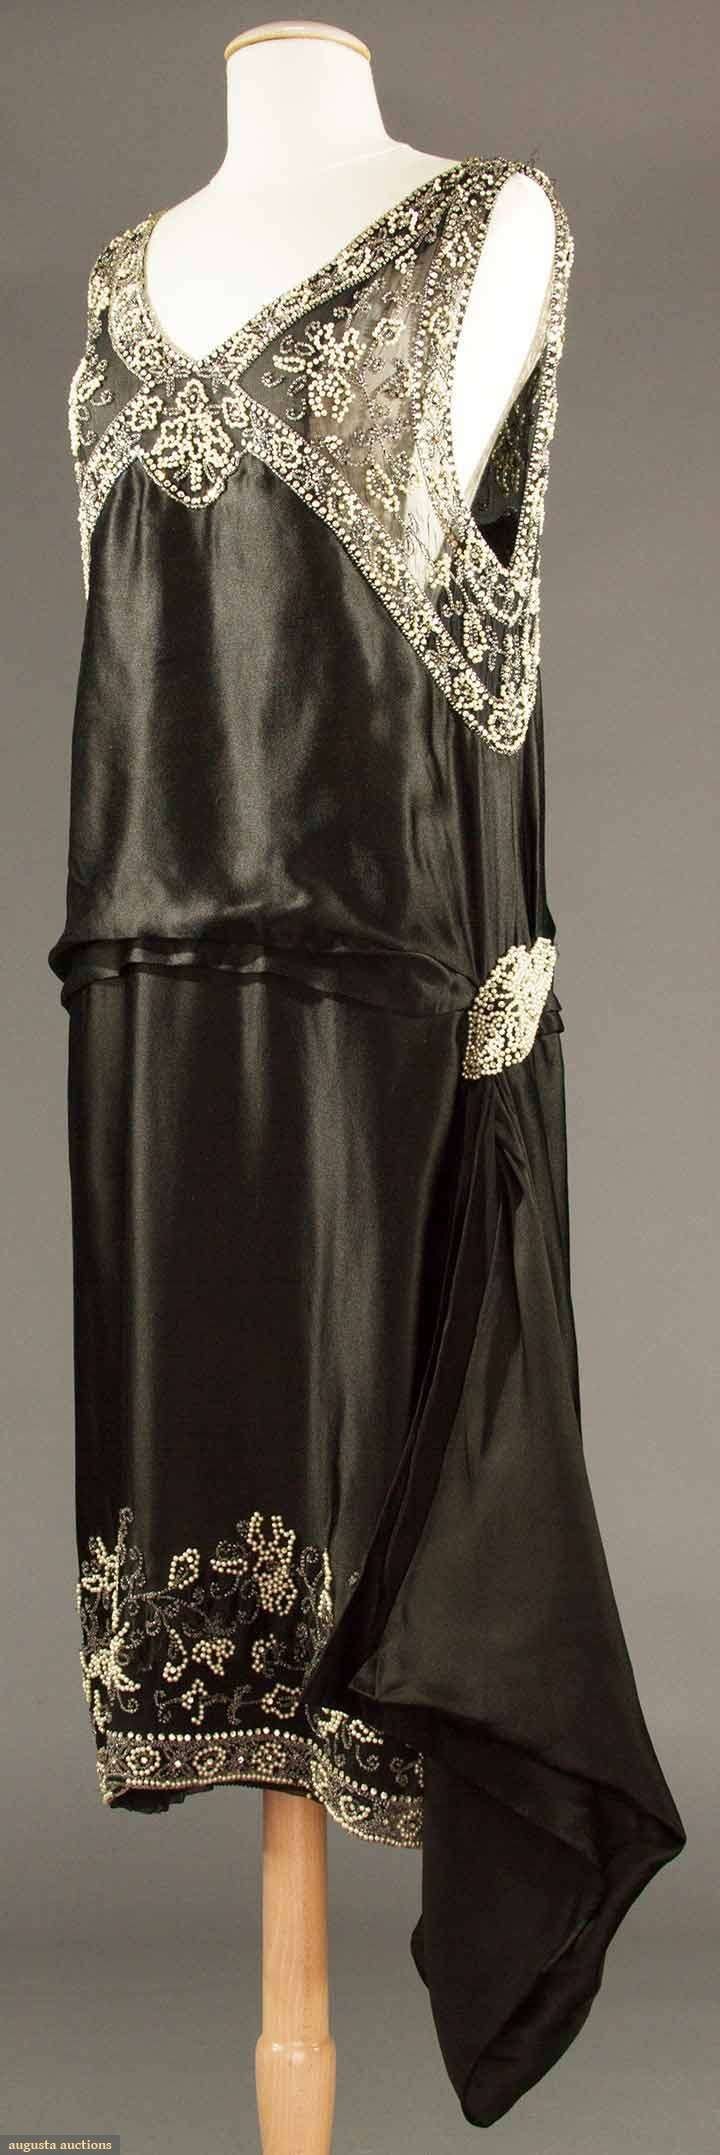 Evening dress, silk and pearls with beads and rhinestones, no label available, 1920s